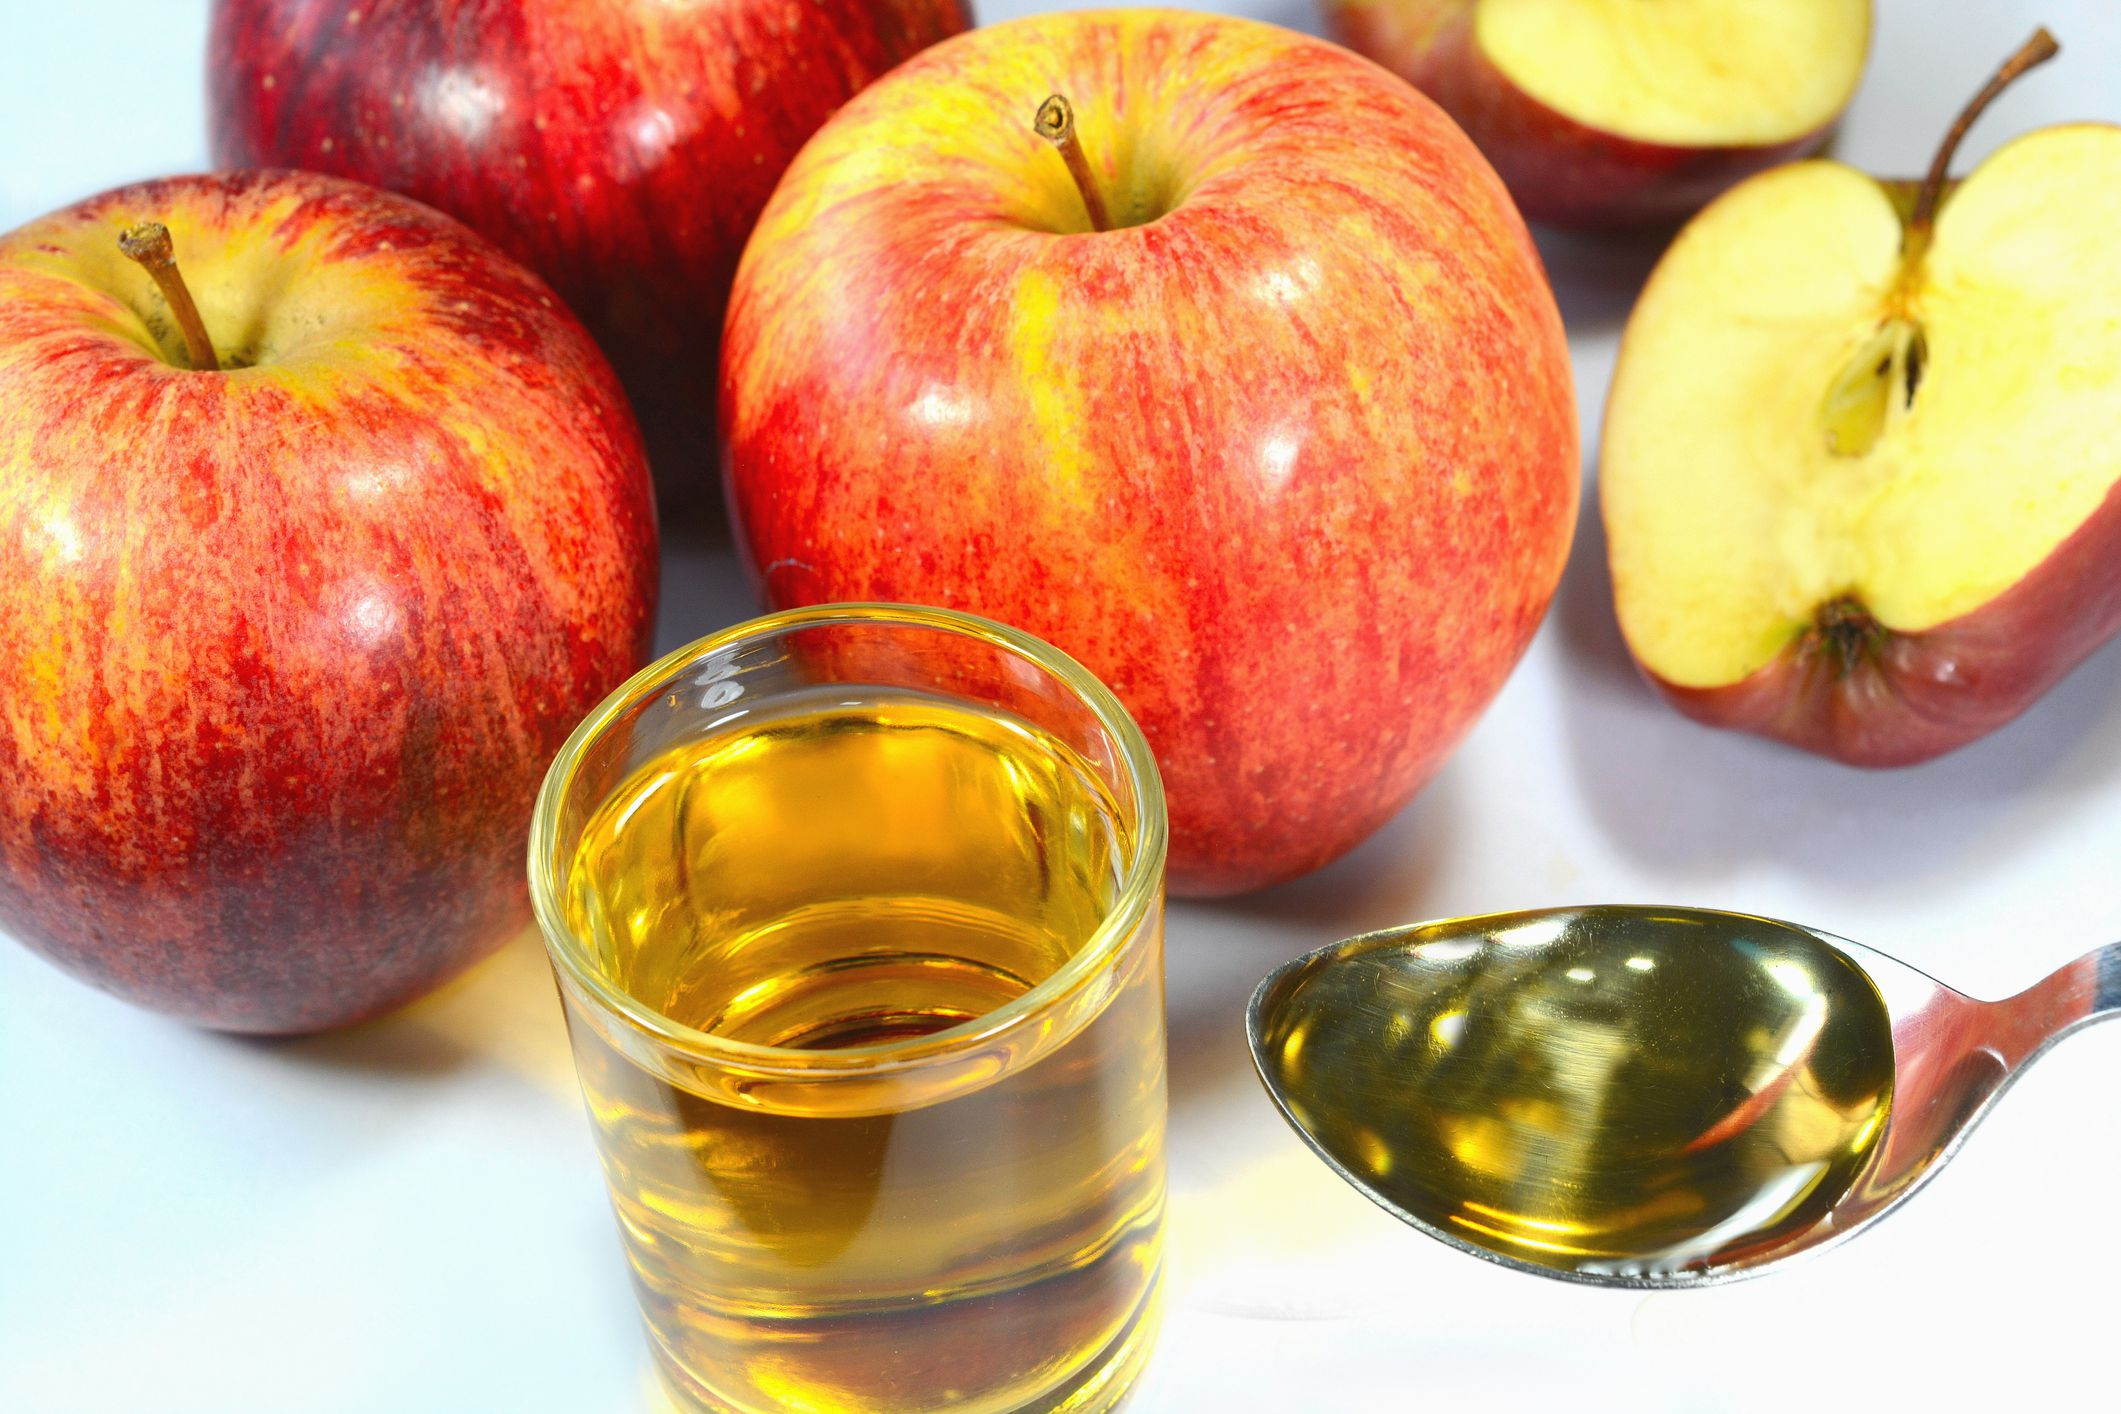 apple cider vinegar drug test drug test and healthy diet